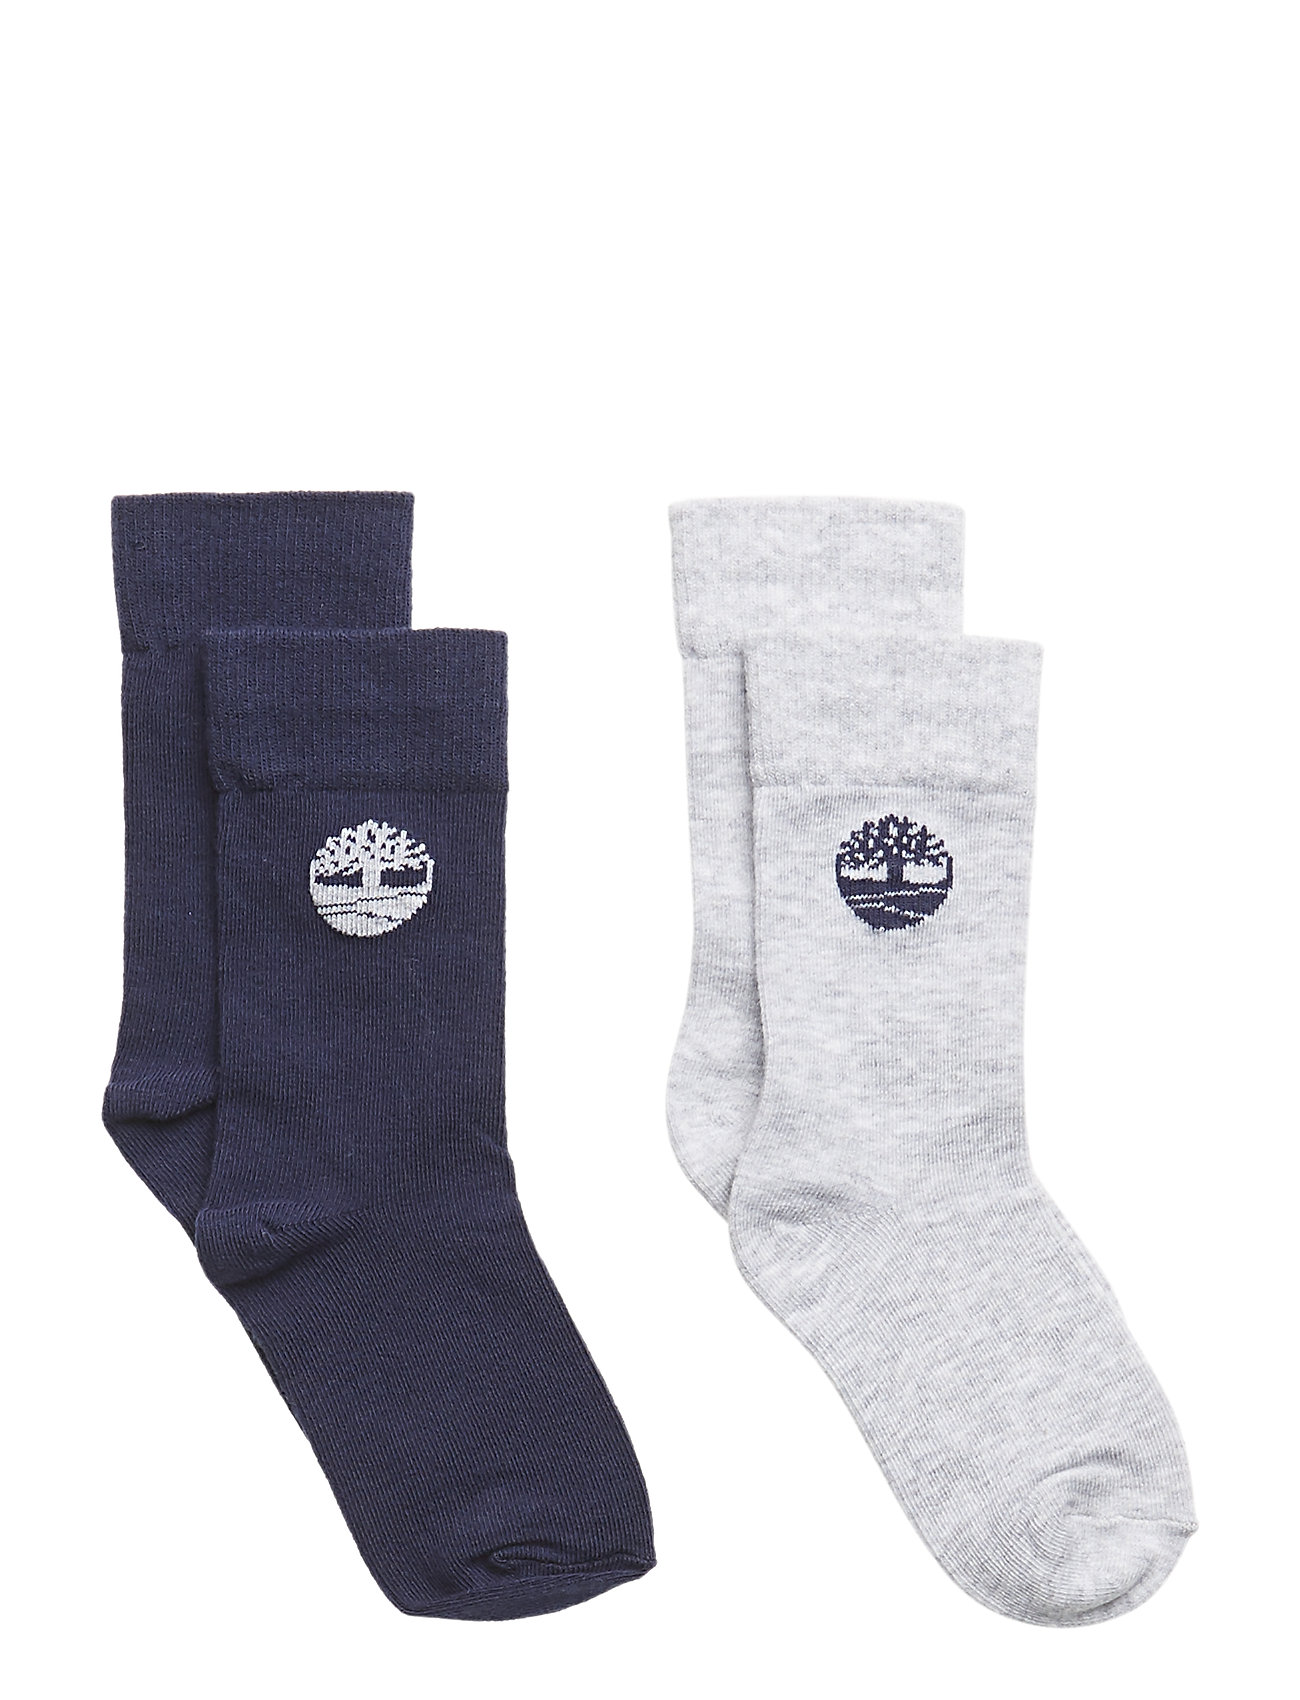 Timberland SOCKS (2) - GREY/BLUE NAVY